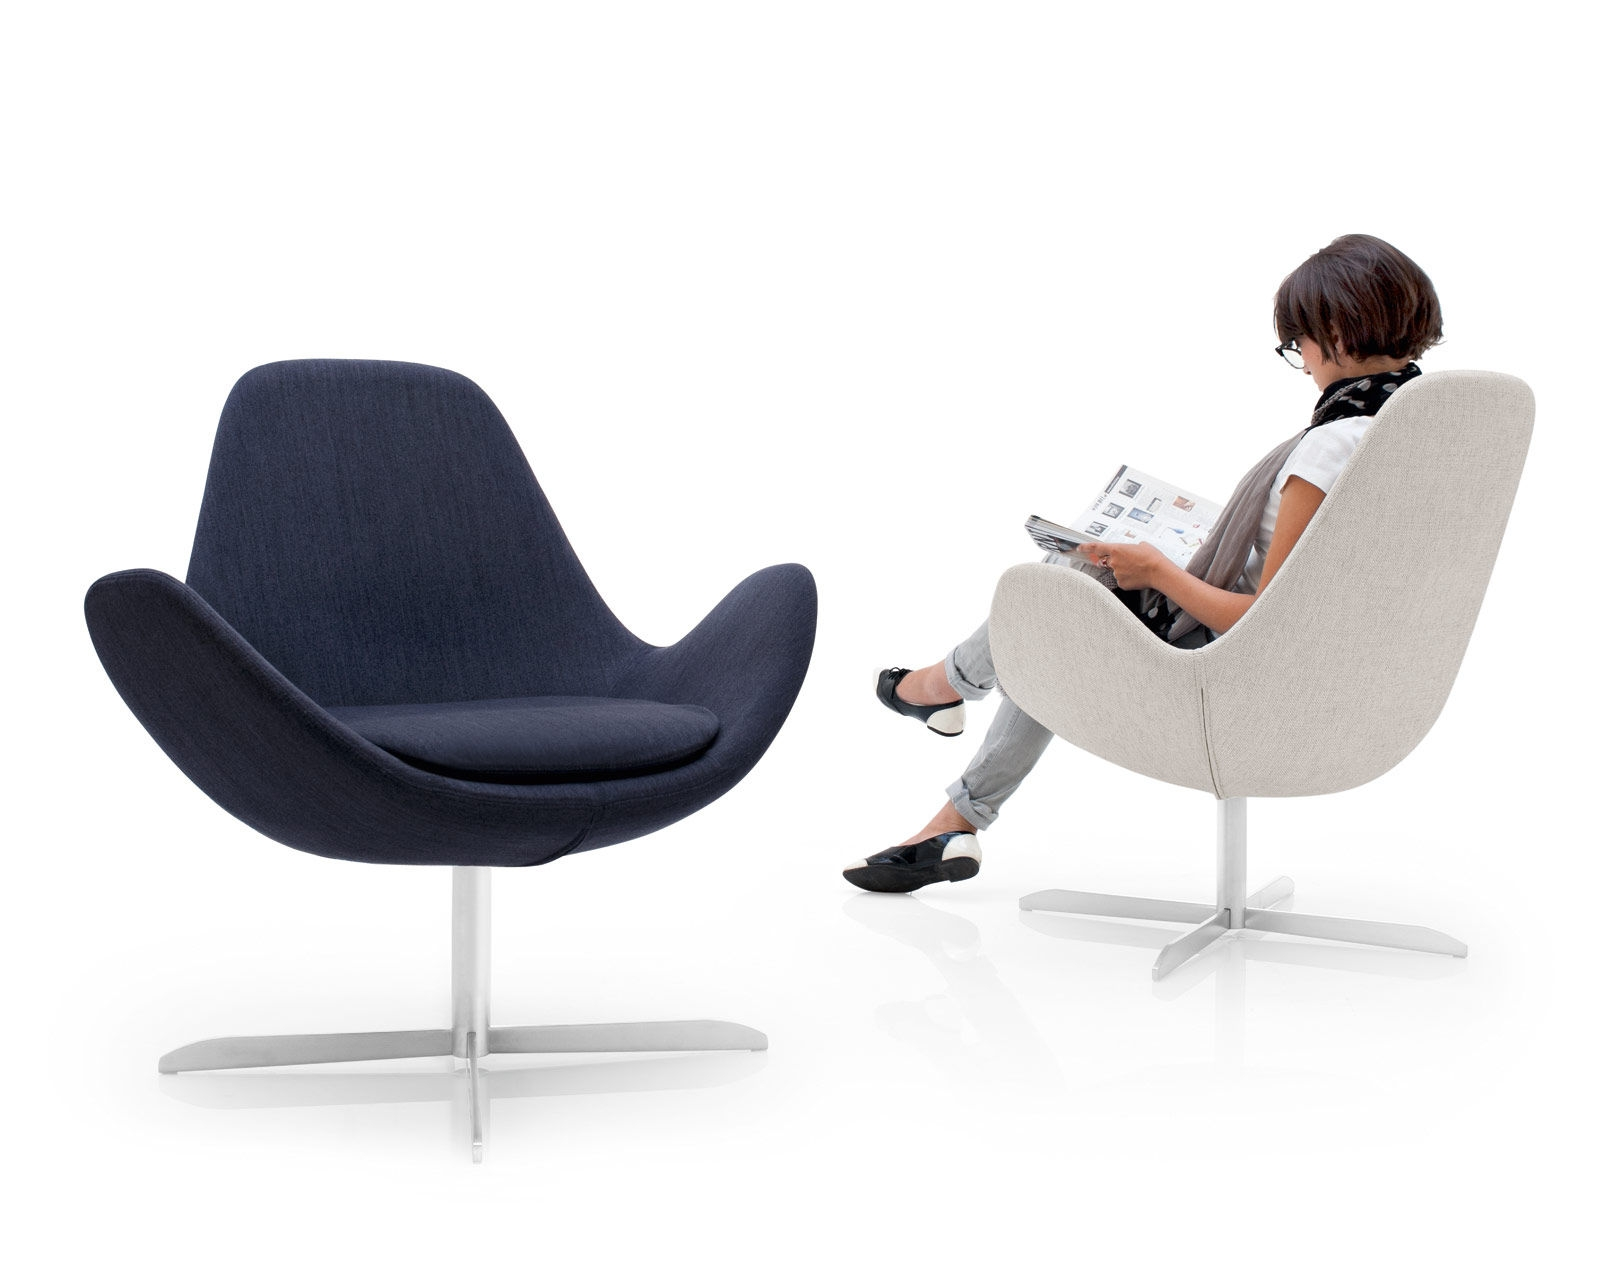 15 Photos Small Arm Chairs